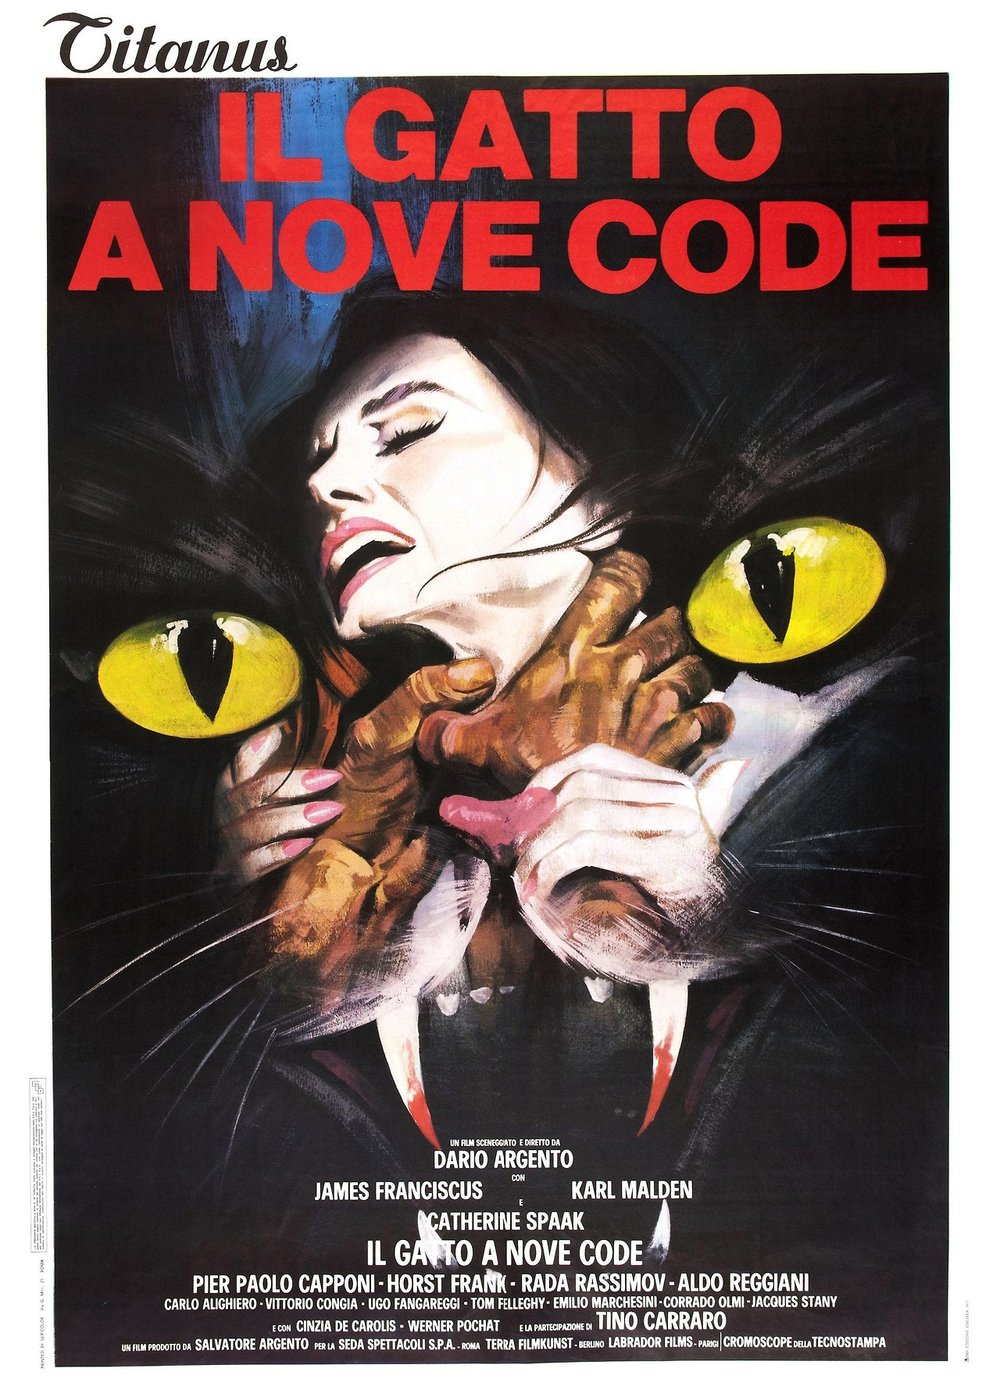 Dario Argento - The Cat o' Nine Tails